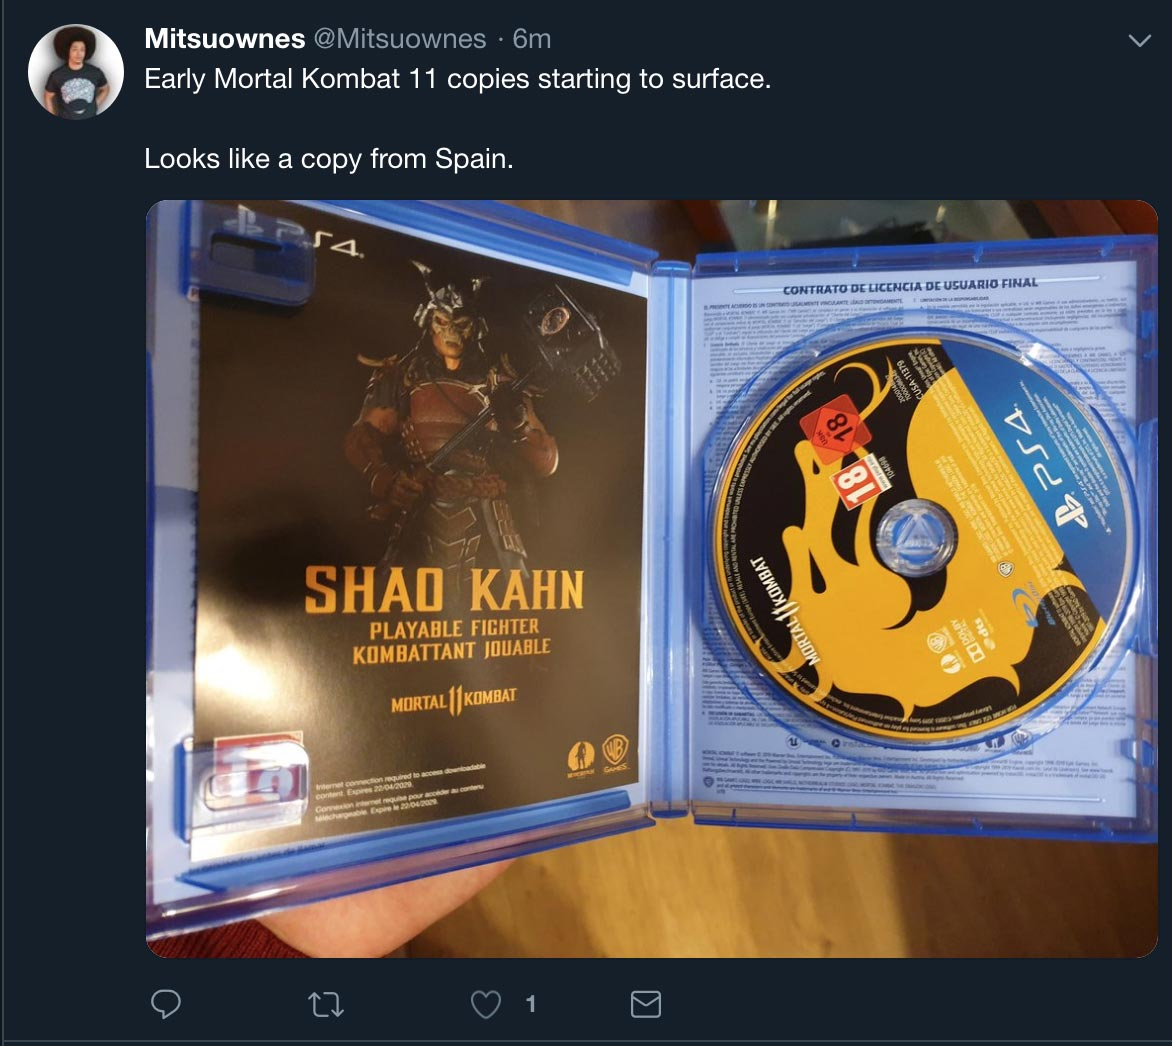 Mortal Kombat 11 disc 1 out of 1 image gallery